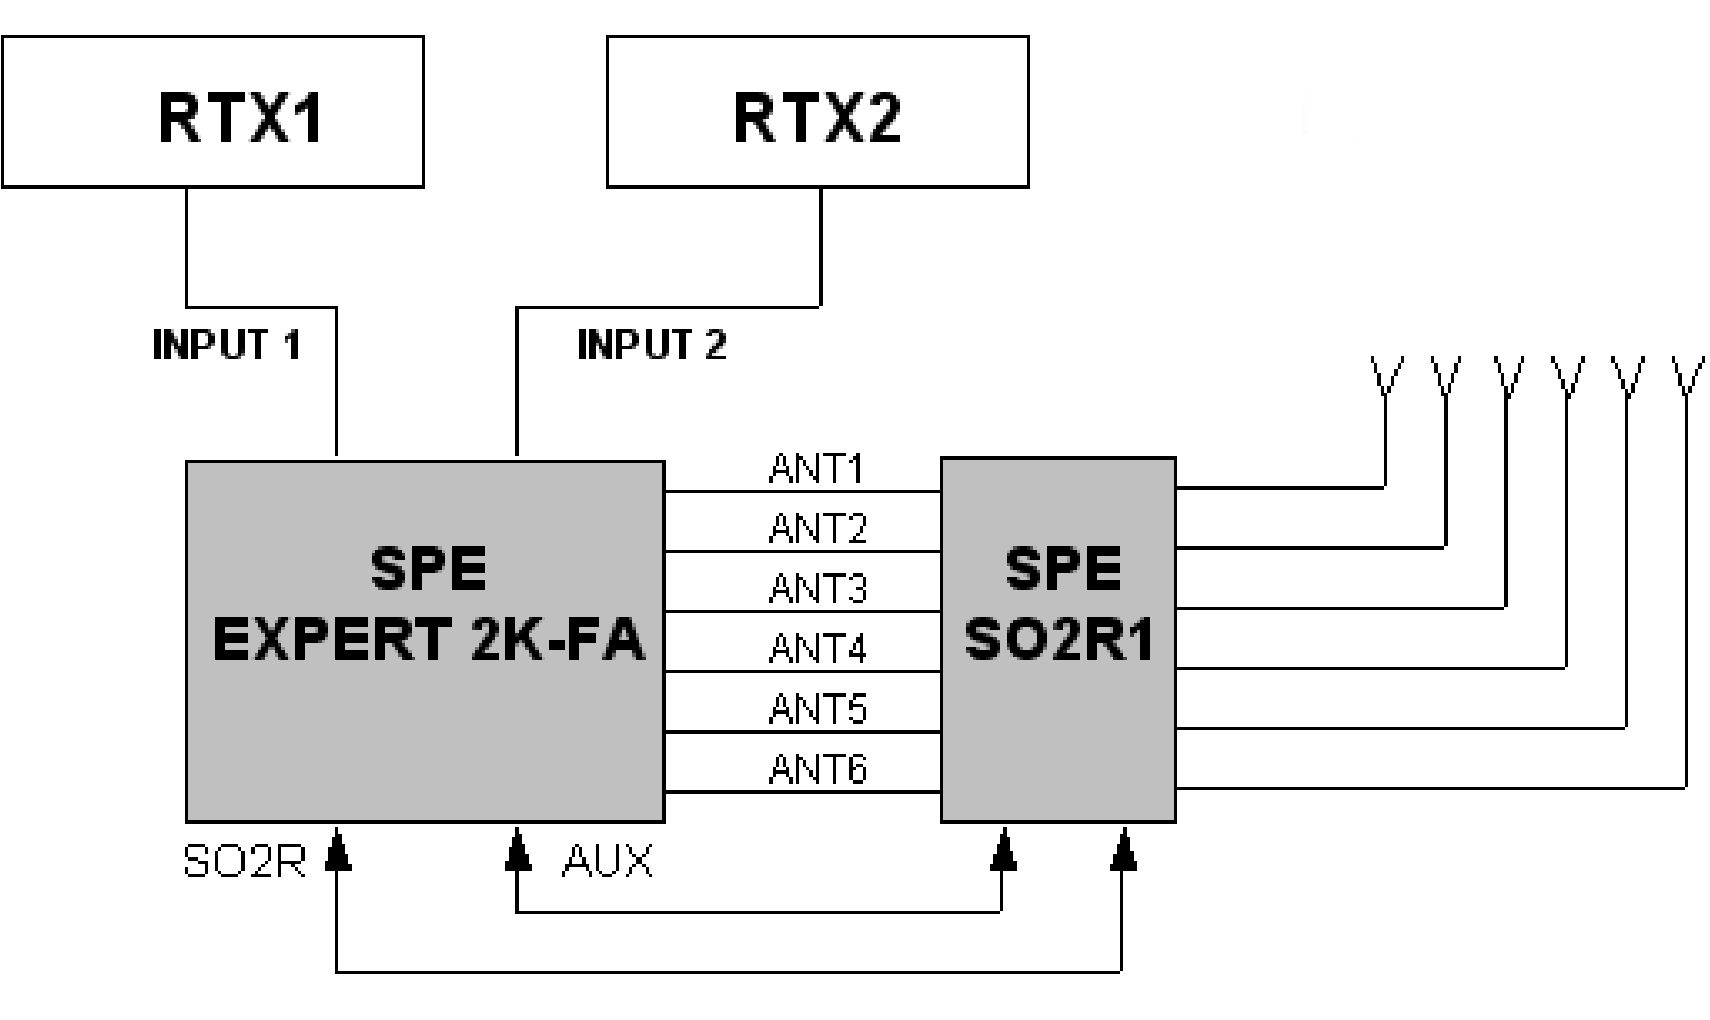 Spe Amb 01 Remote Antenna Switch Australian Amateur Radio Dealer Circuit Diagram Same With Which The Multiplier Is Received A Special Unit Used For This Switching So That Structure Still Ensures Fully Automatic Use